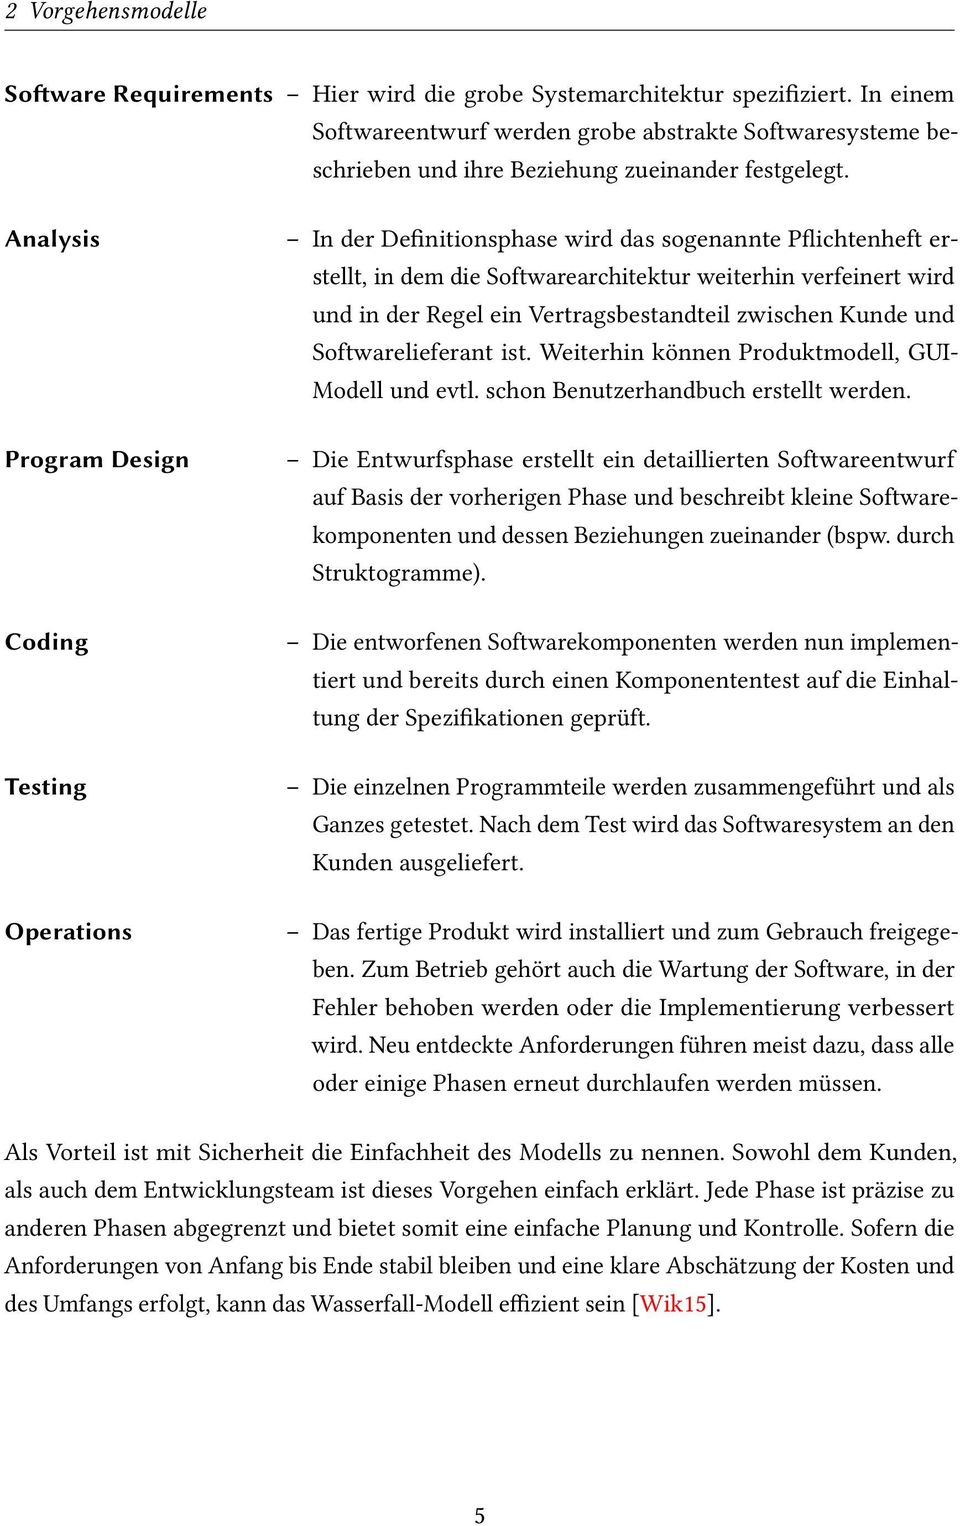 Analysis Program Design Coding Testing Operations In der Definitionsphase wird das sogenannte Pflichtenheft erstellt, in dem die Softwarearchitektur weiterhin verfeinert wird und in der Regel ein